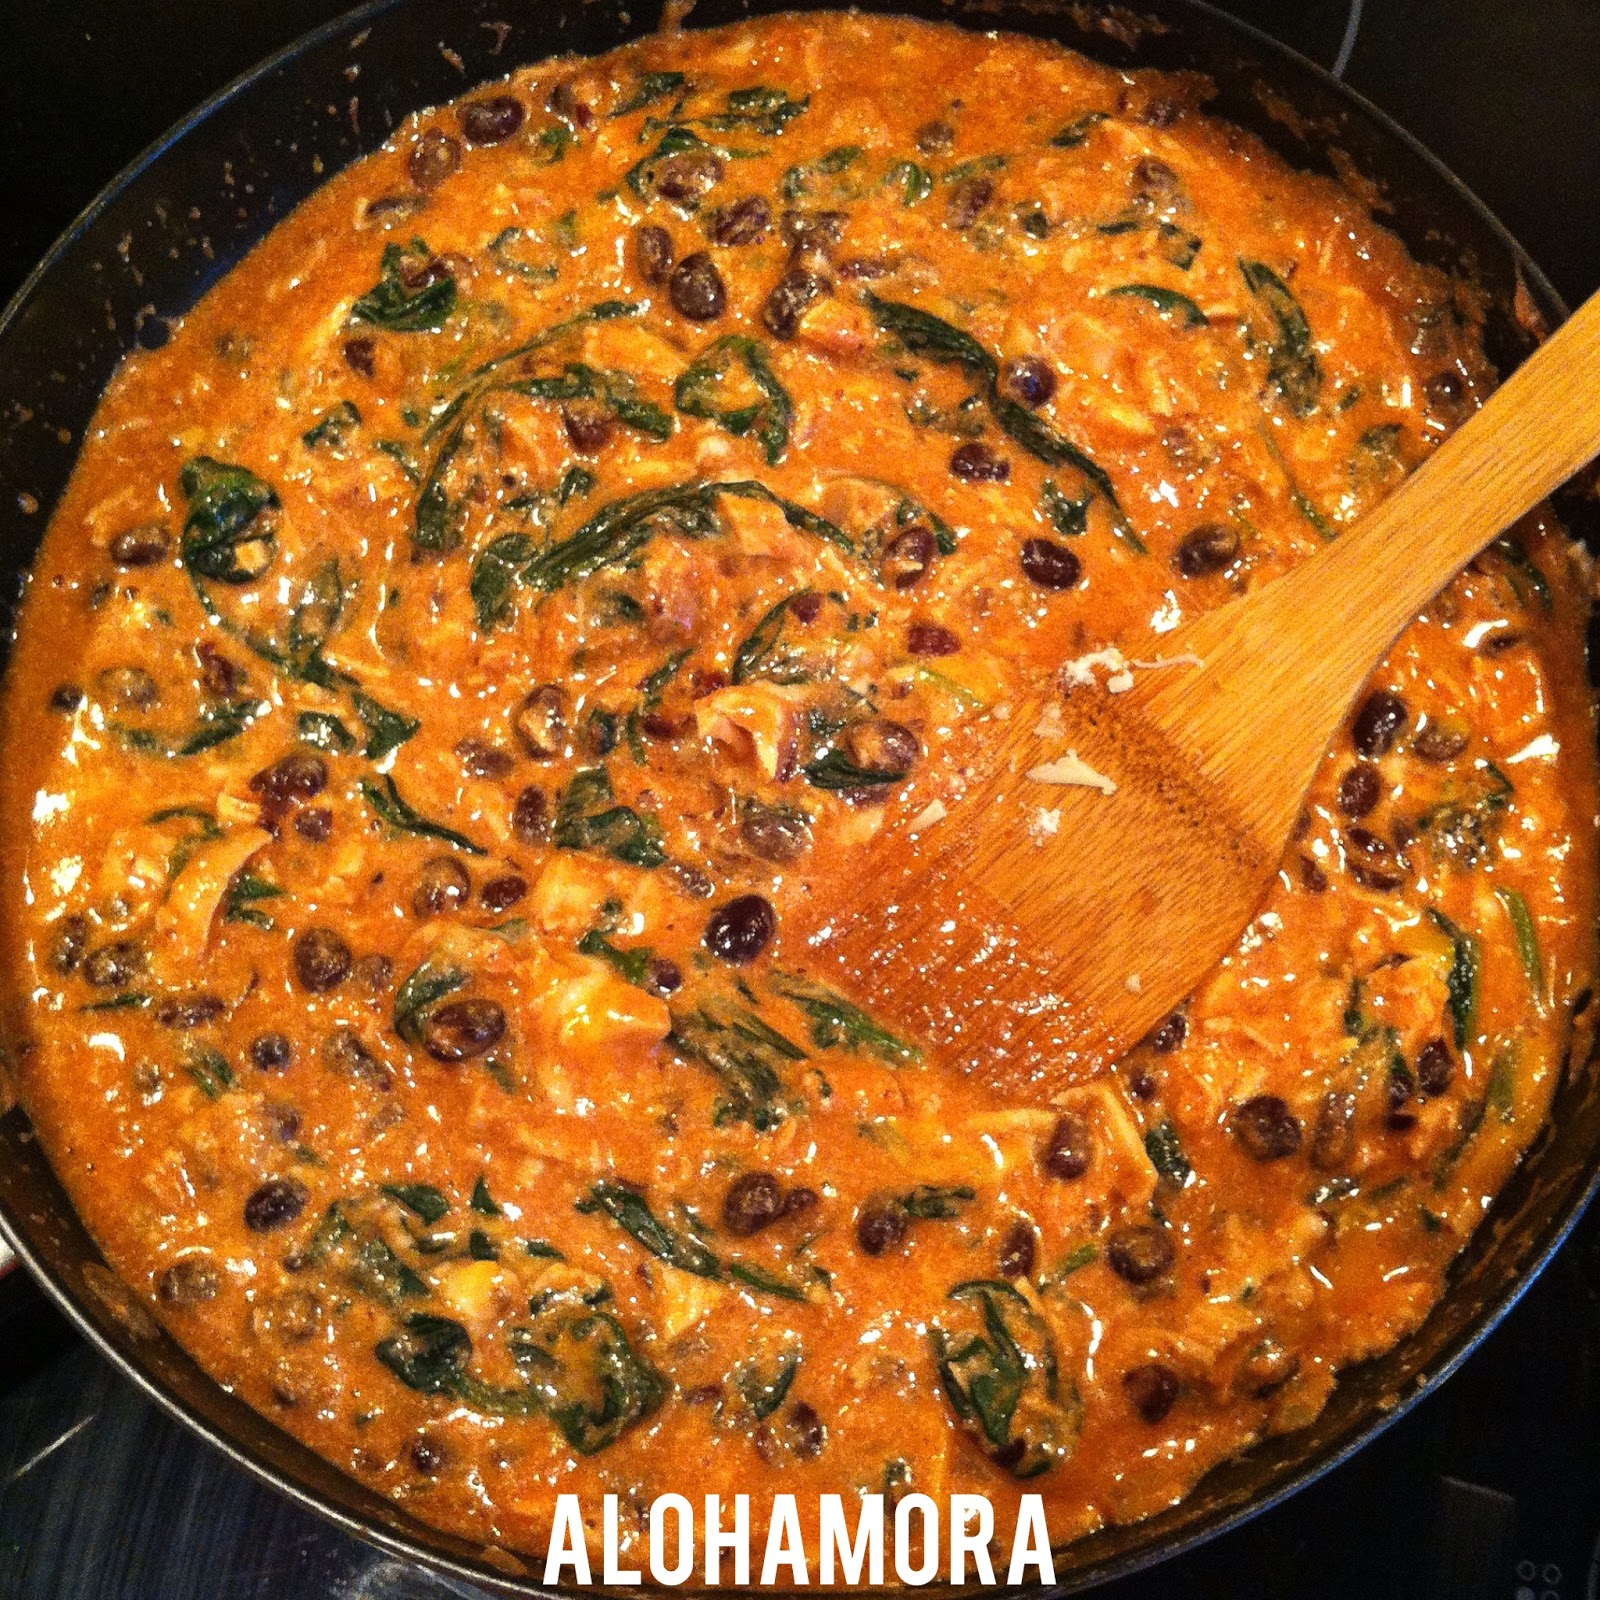 Creamy Red Enchilada Casserole with Chicken, Spinach, and Black Beans is healthy, delicious, flavorful, gluten free, and incredibly fast and easy to make. Alohamora Open a Book http://www.alohamoraopenabook.blogspot.com/